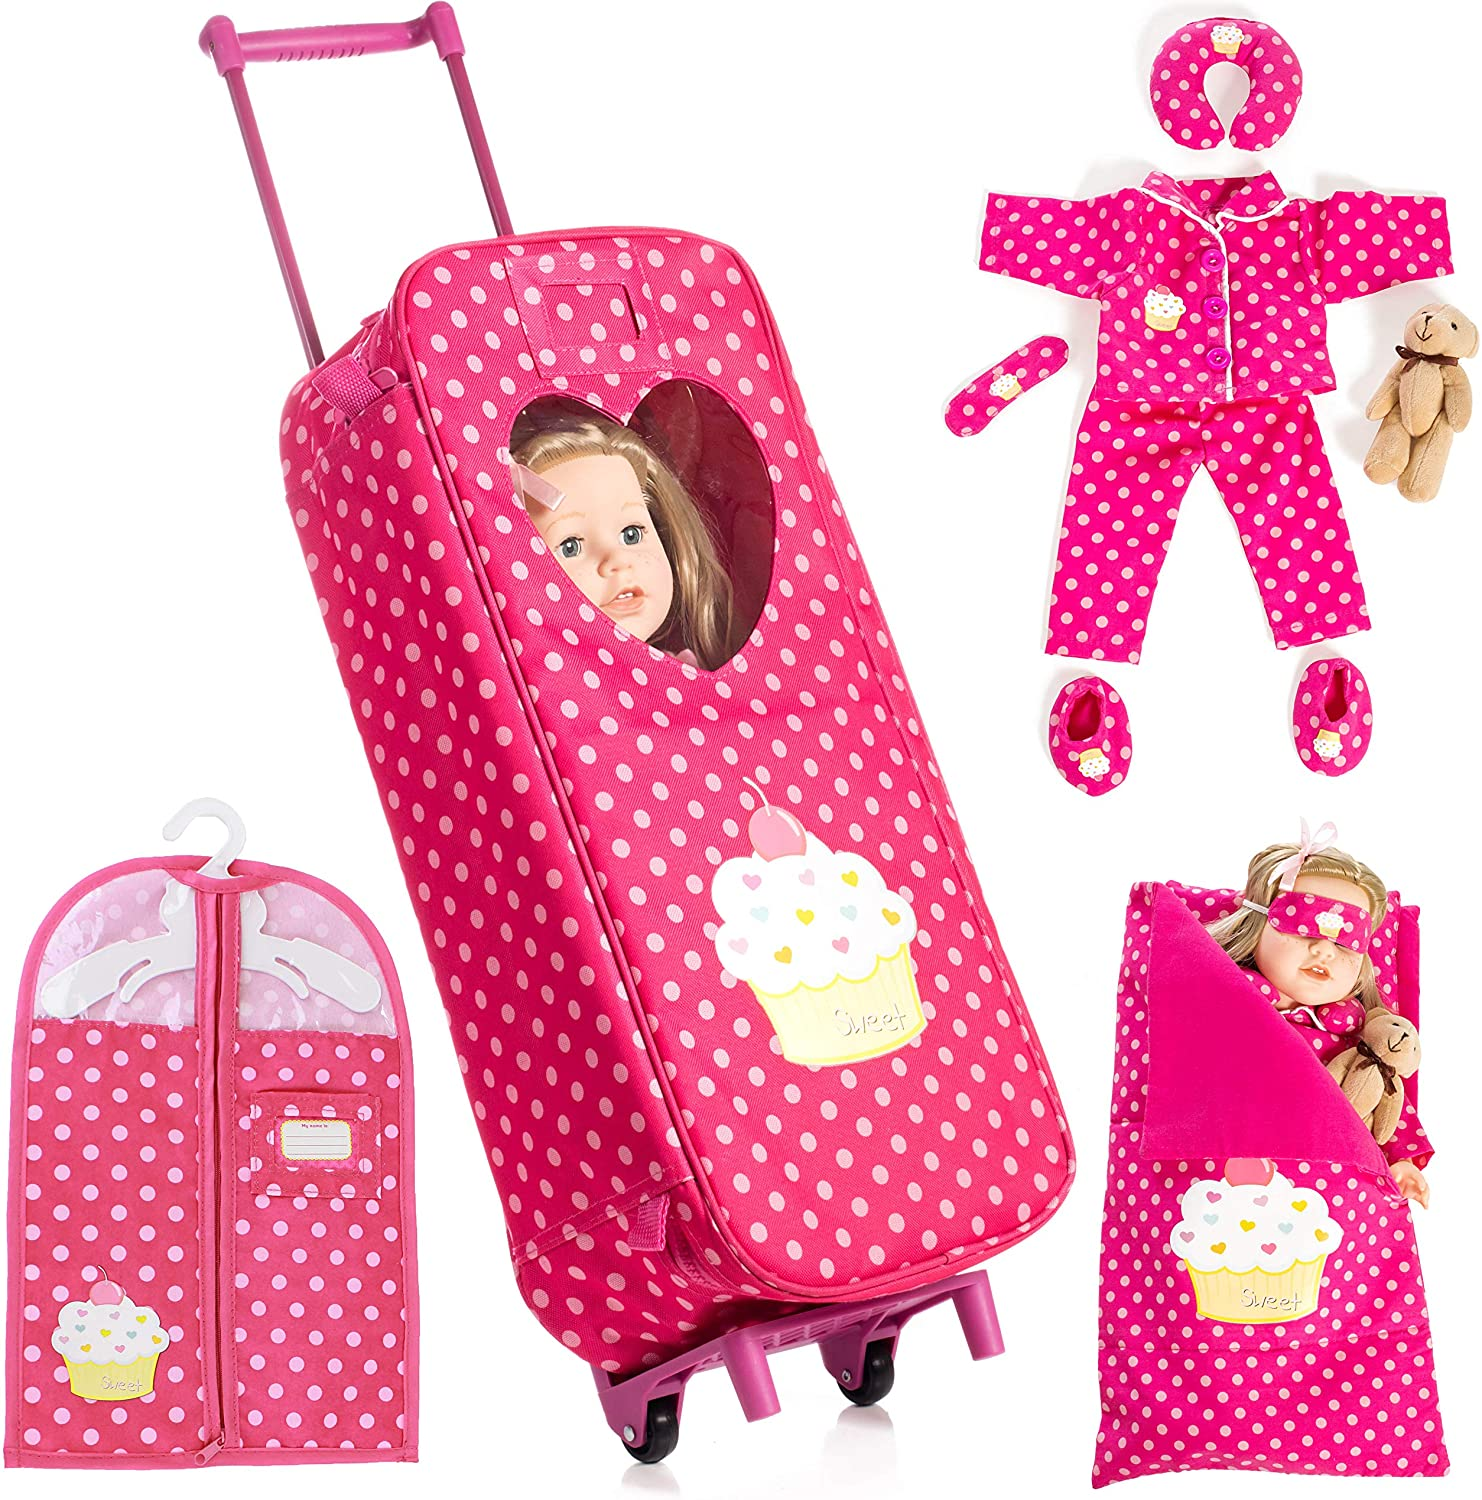 Beverly Hills Doll Collection 8 Piece Doll Traveling Trolley Set fits 18